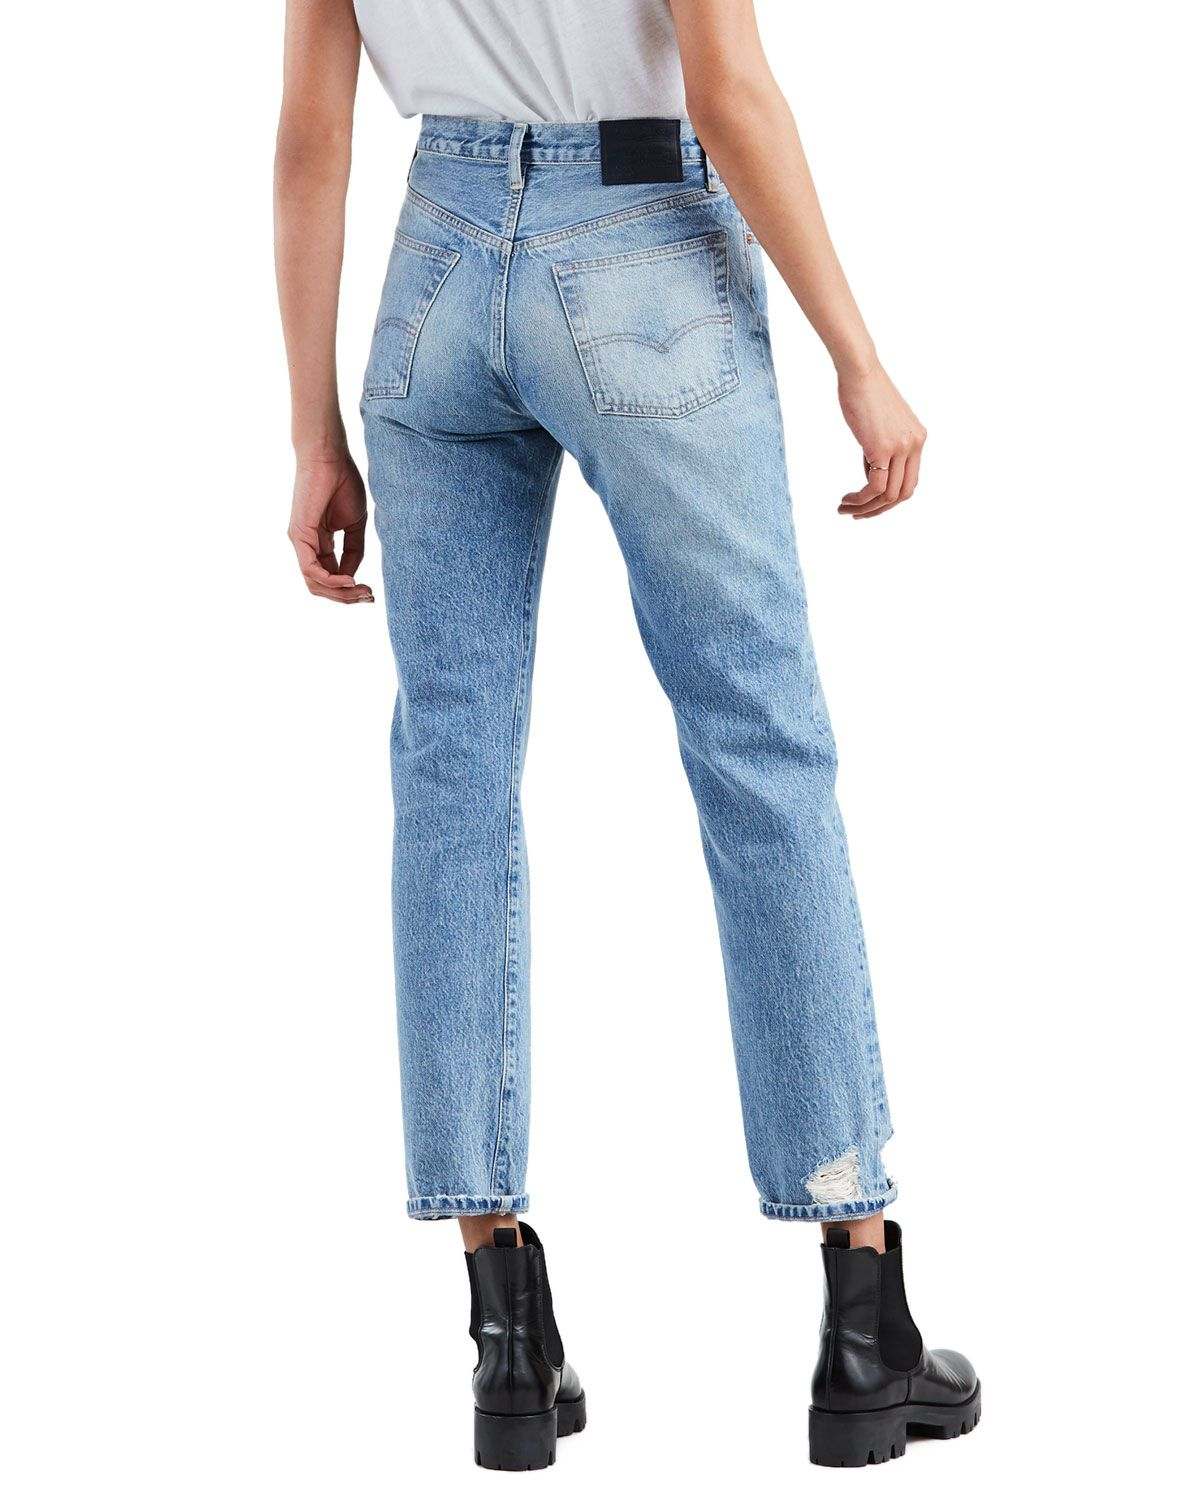 run shoes finest fabrics shop for Levi's 501 High-Rise Straight-Leg Cropped Jeans   Products ...